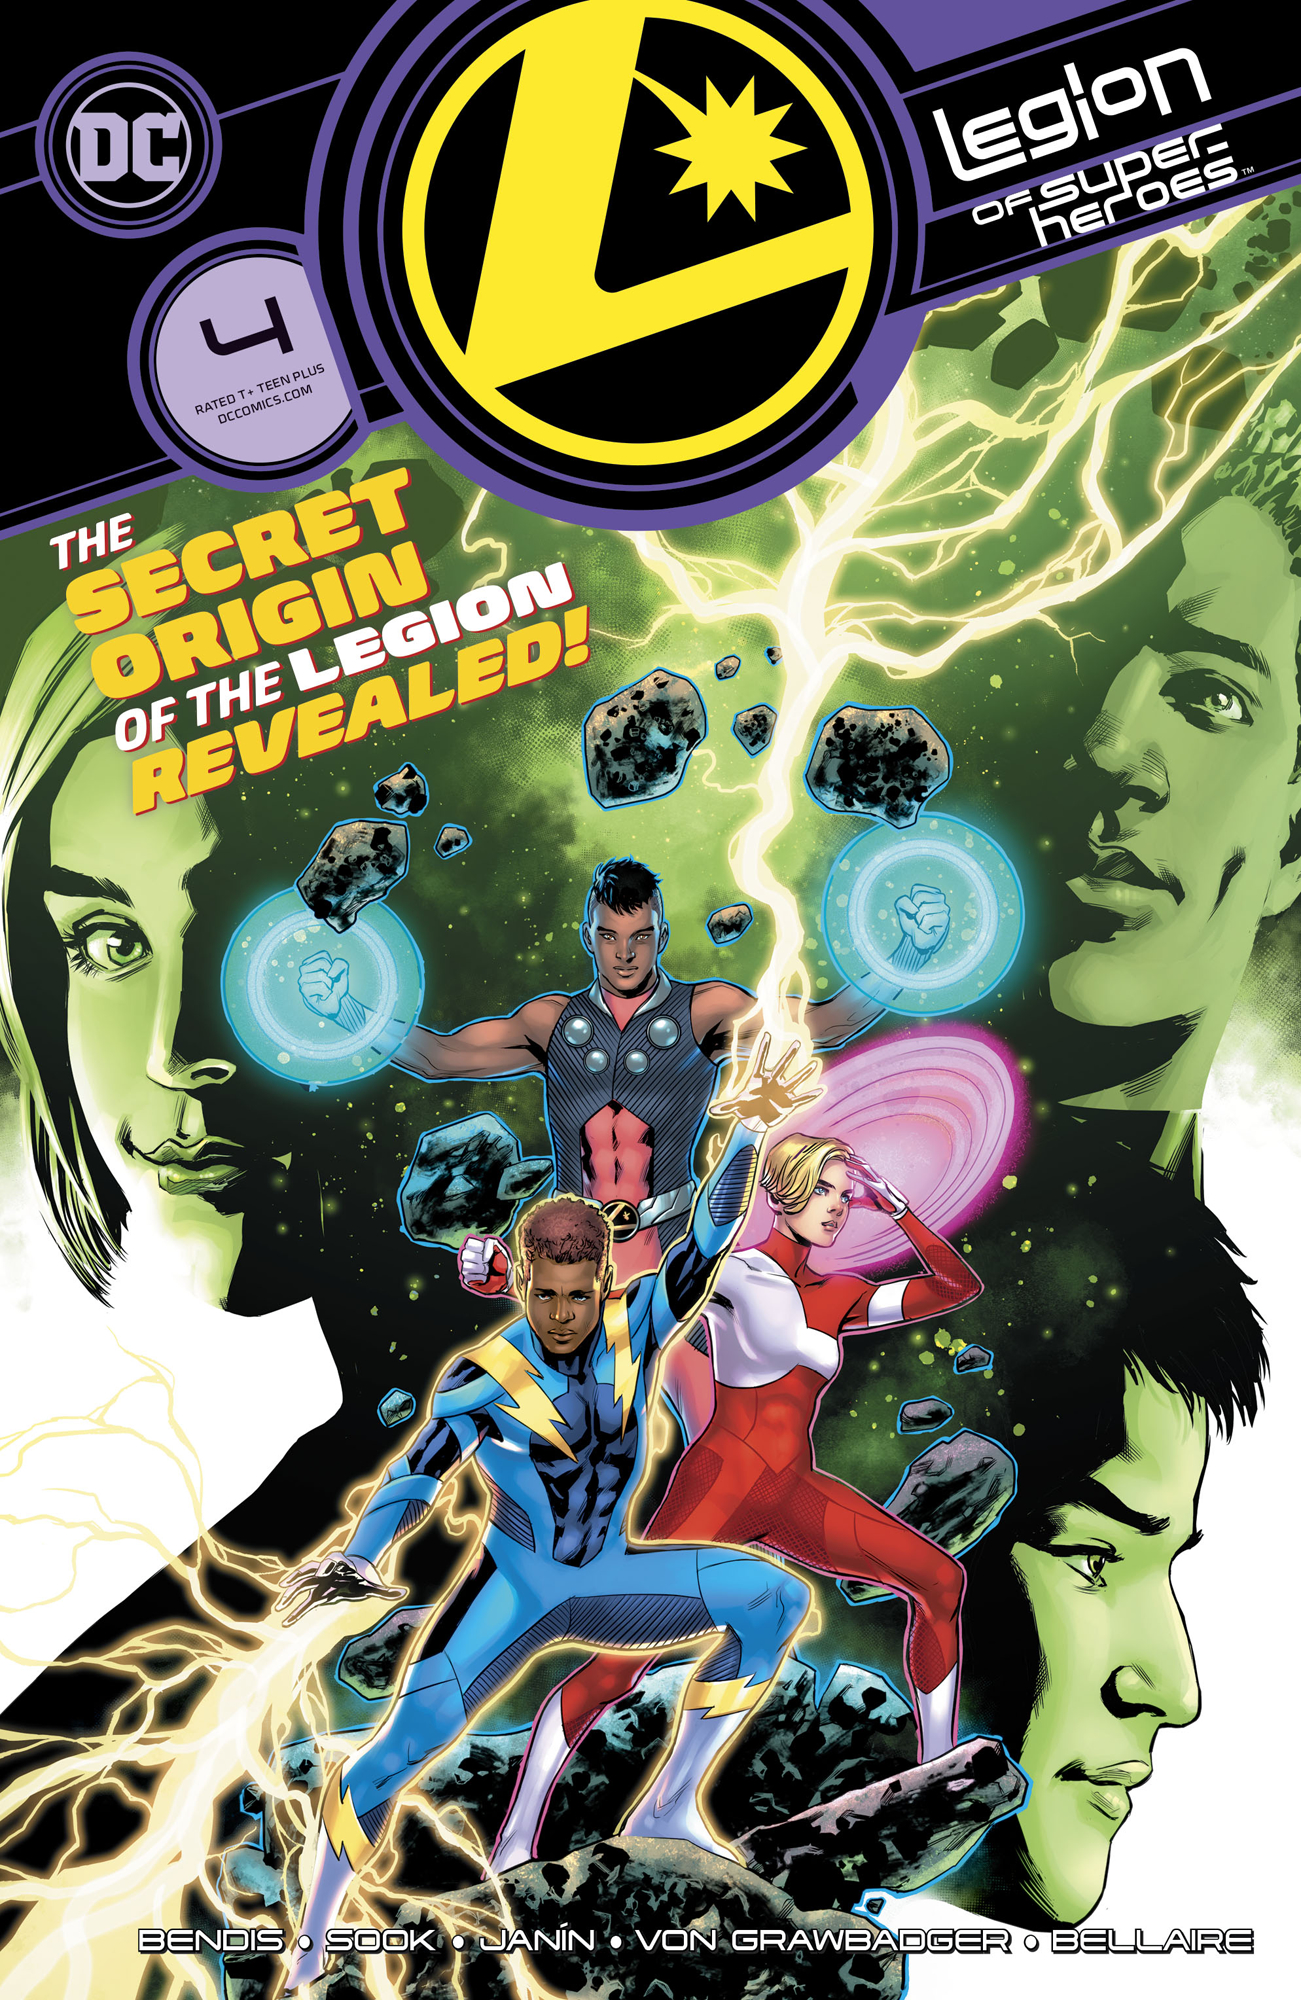 LEGION OF SUPER HEROES #4